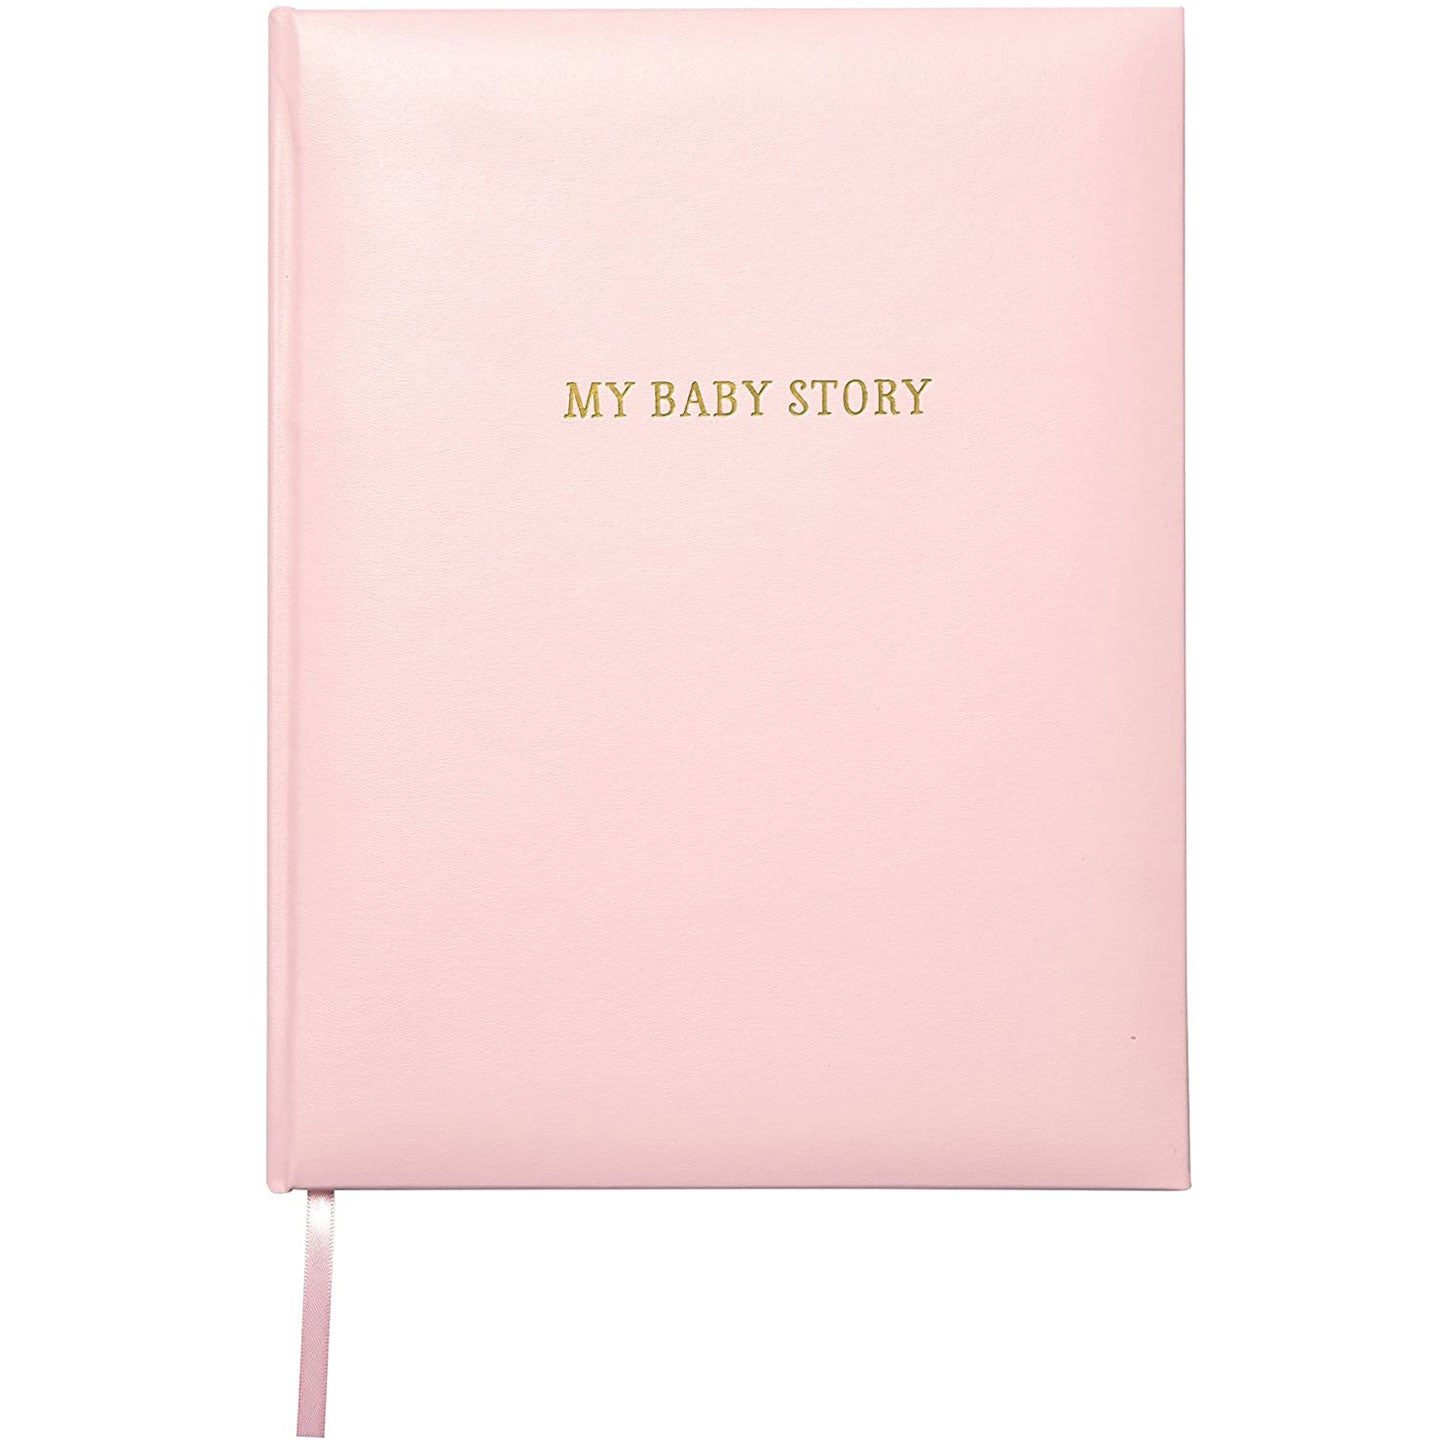 My Baby Story Pink Leather Memory Book